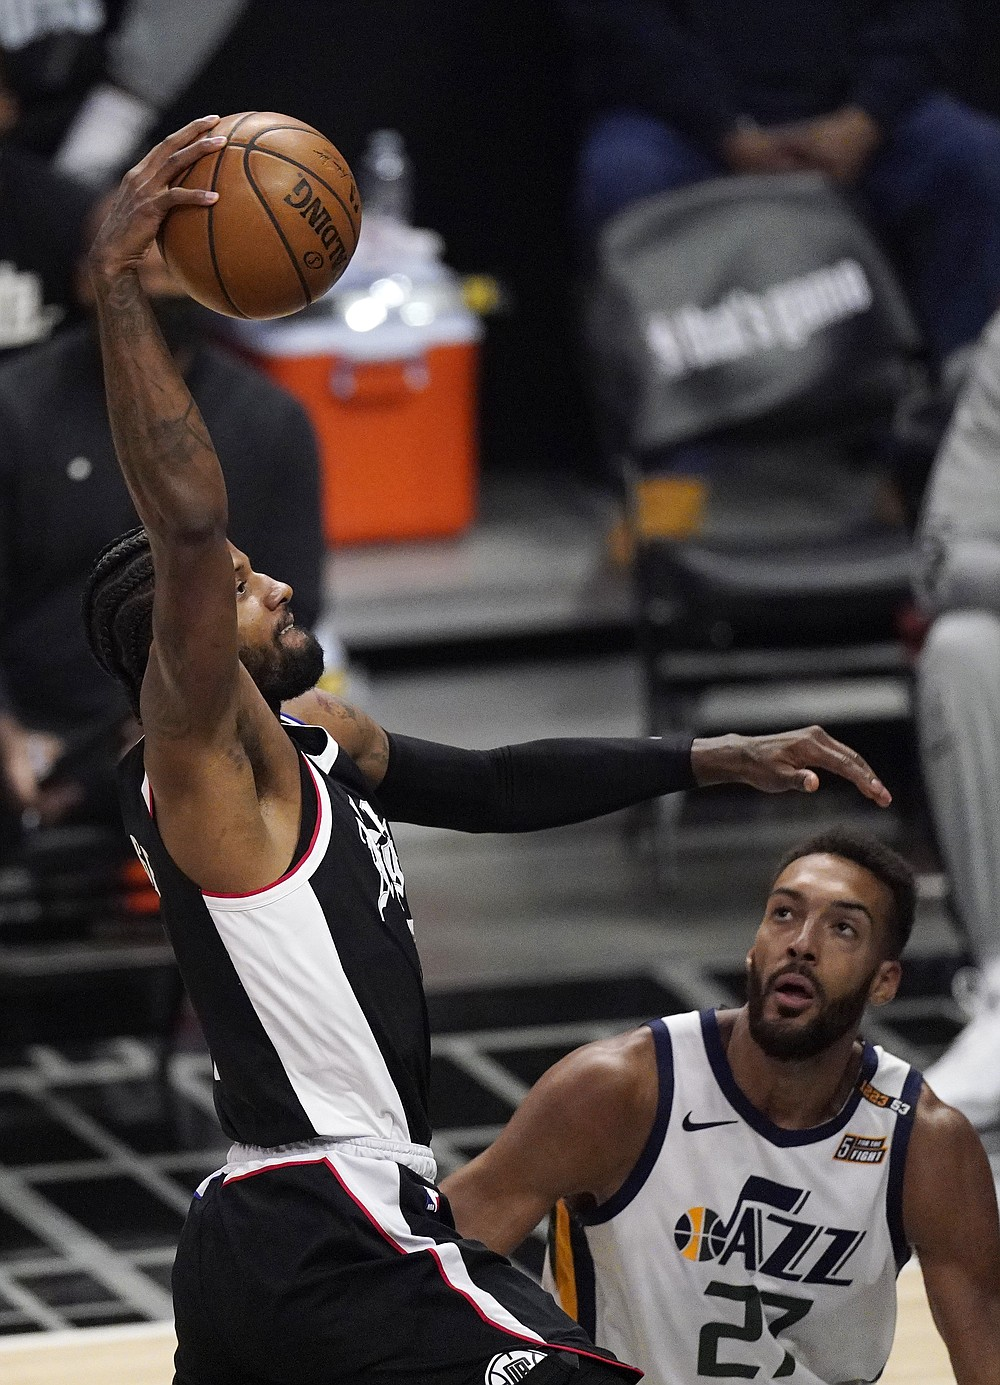 Los Angeles Clippers guard Paul George, left, dunks as Utah Jazz center Rudy Gobert watches during the second half of Game 3 of a second-round NBA basketball playoff series Saturday, June 12, 2021, in Los Angeles. (AP Photo/Mark J. Terrill)